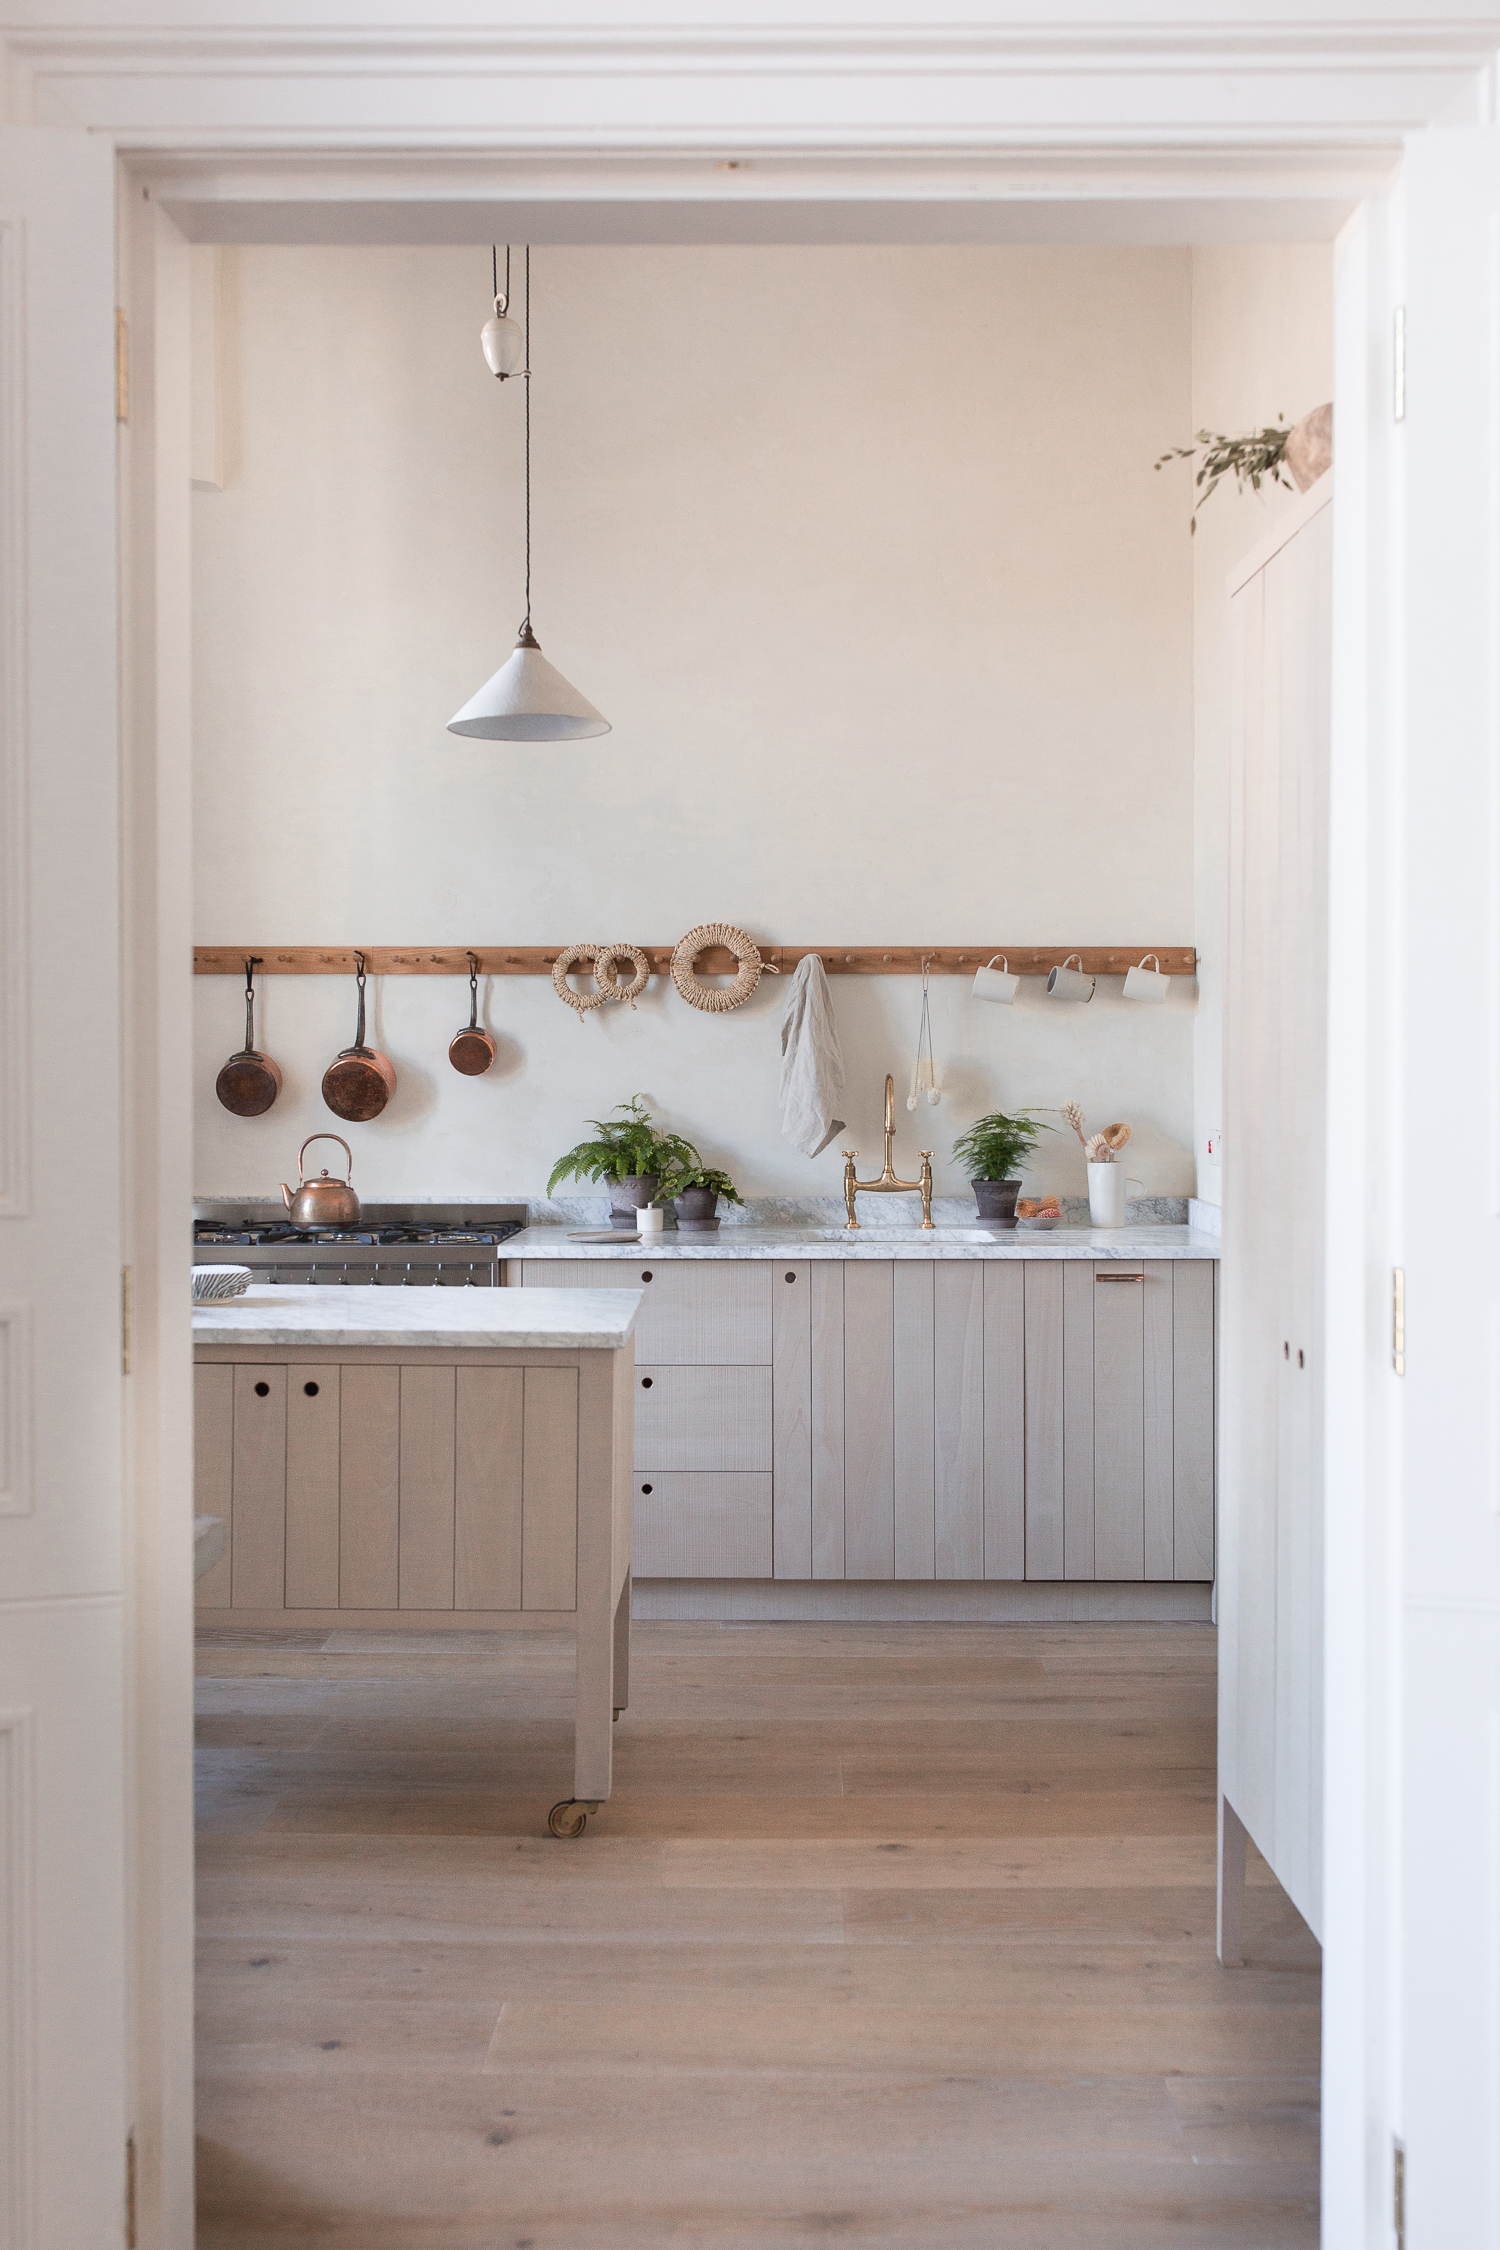 13. Photography Credit to Ingredients LDN - The Ingredients LDN Kitchen by deVOL - Low-Res.jpg